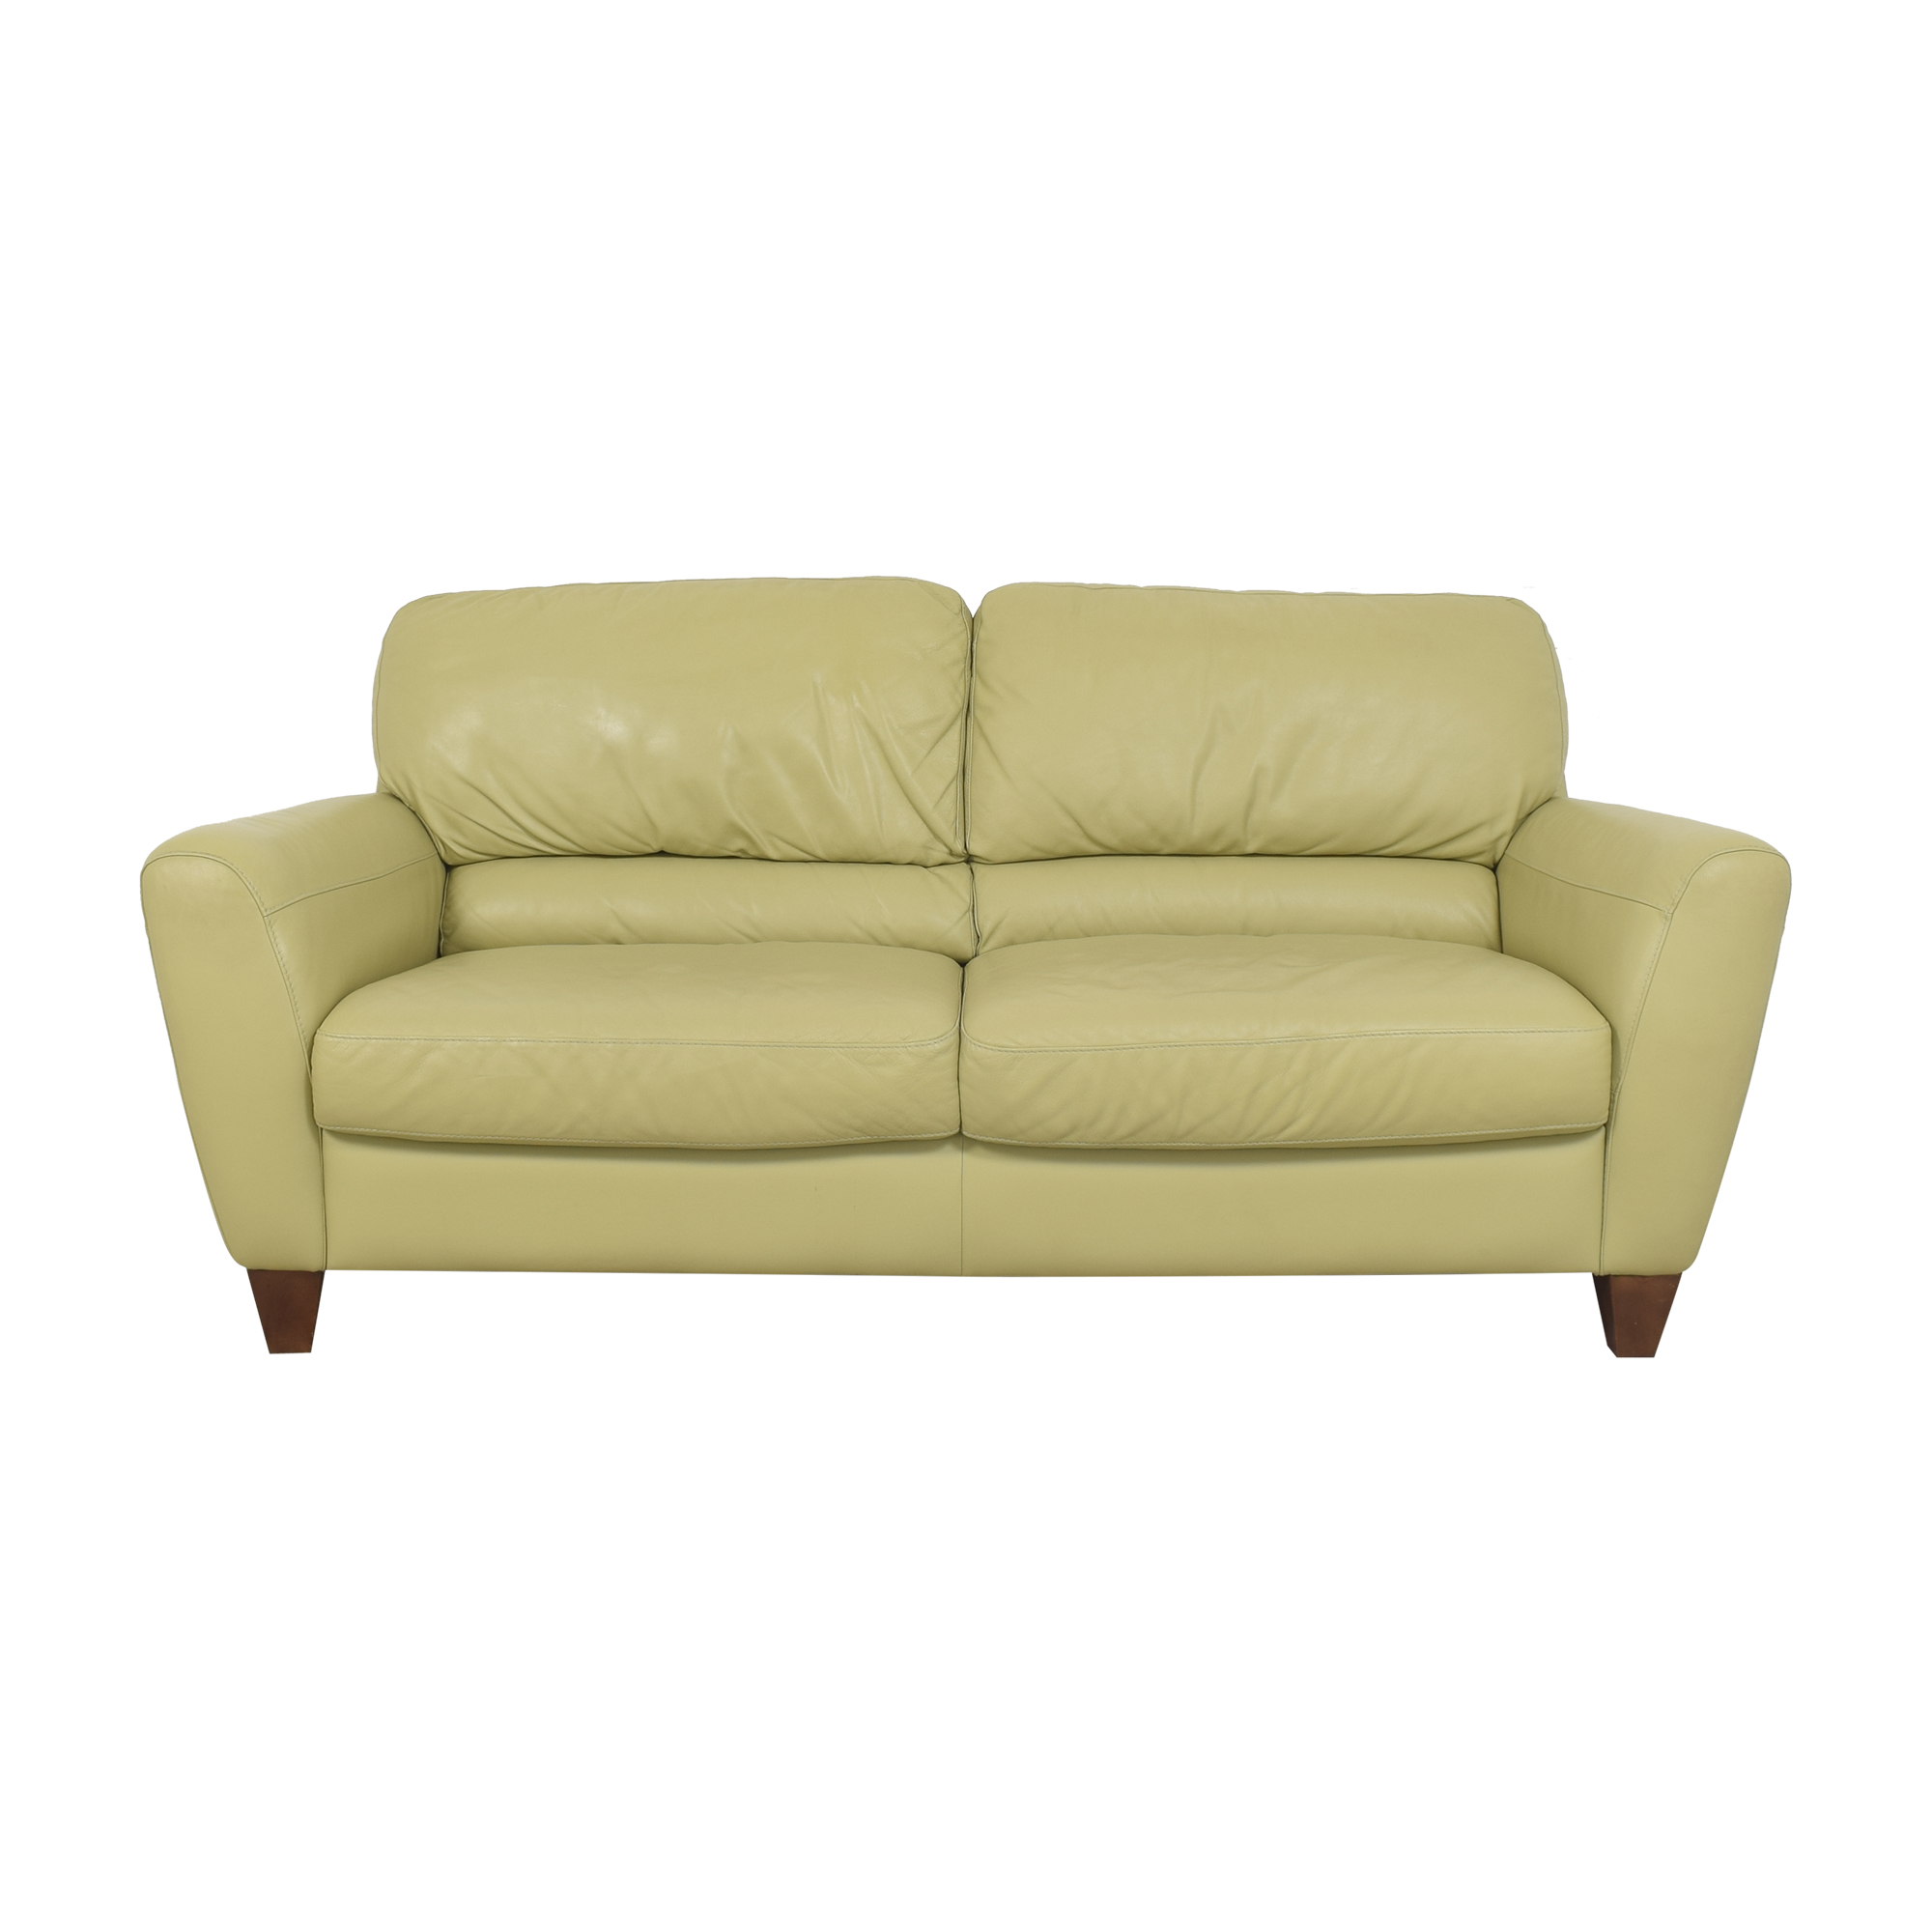 Italsofa Two Cushion Sofa sale